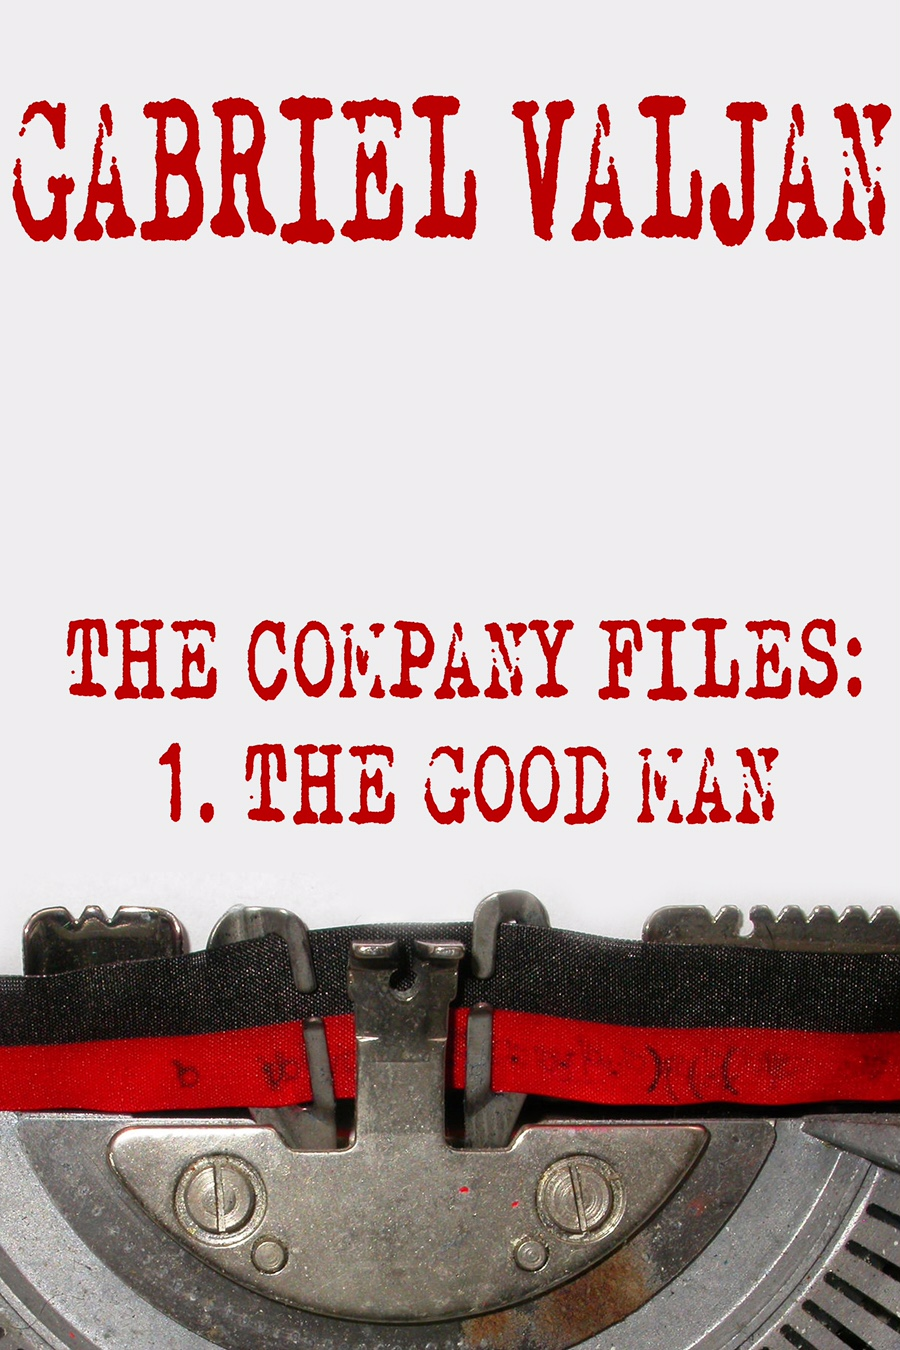 The Company Files: 1. The Good Man by Gabriel Valjan